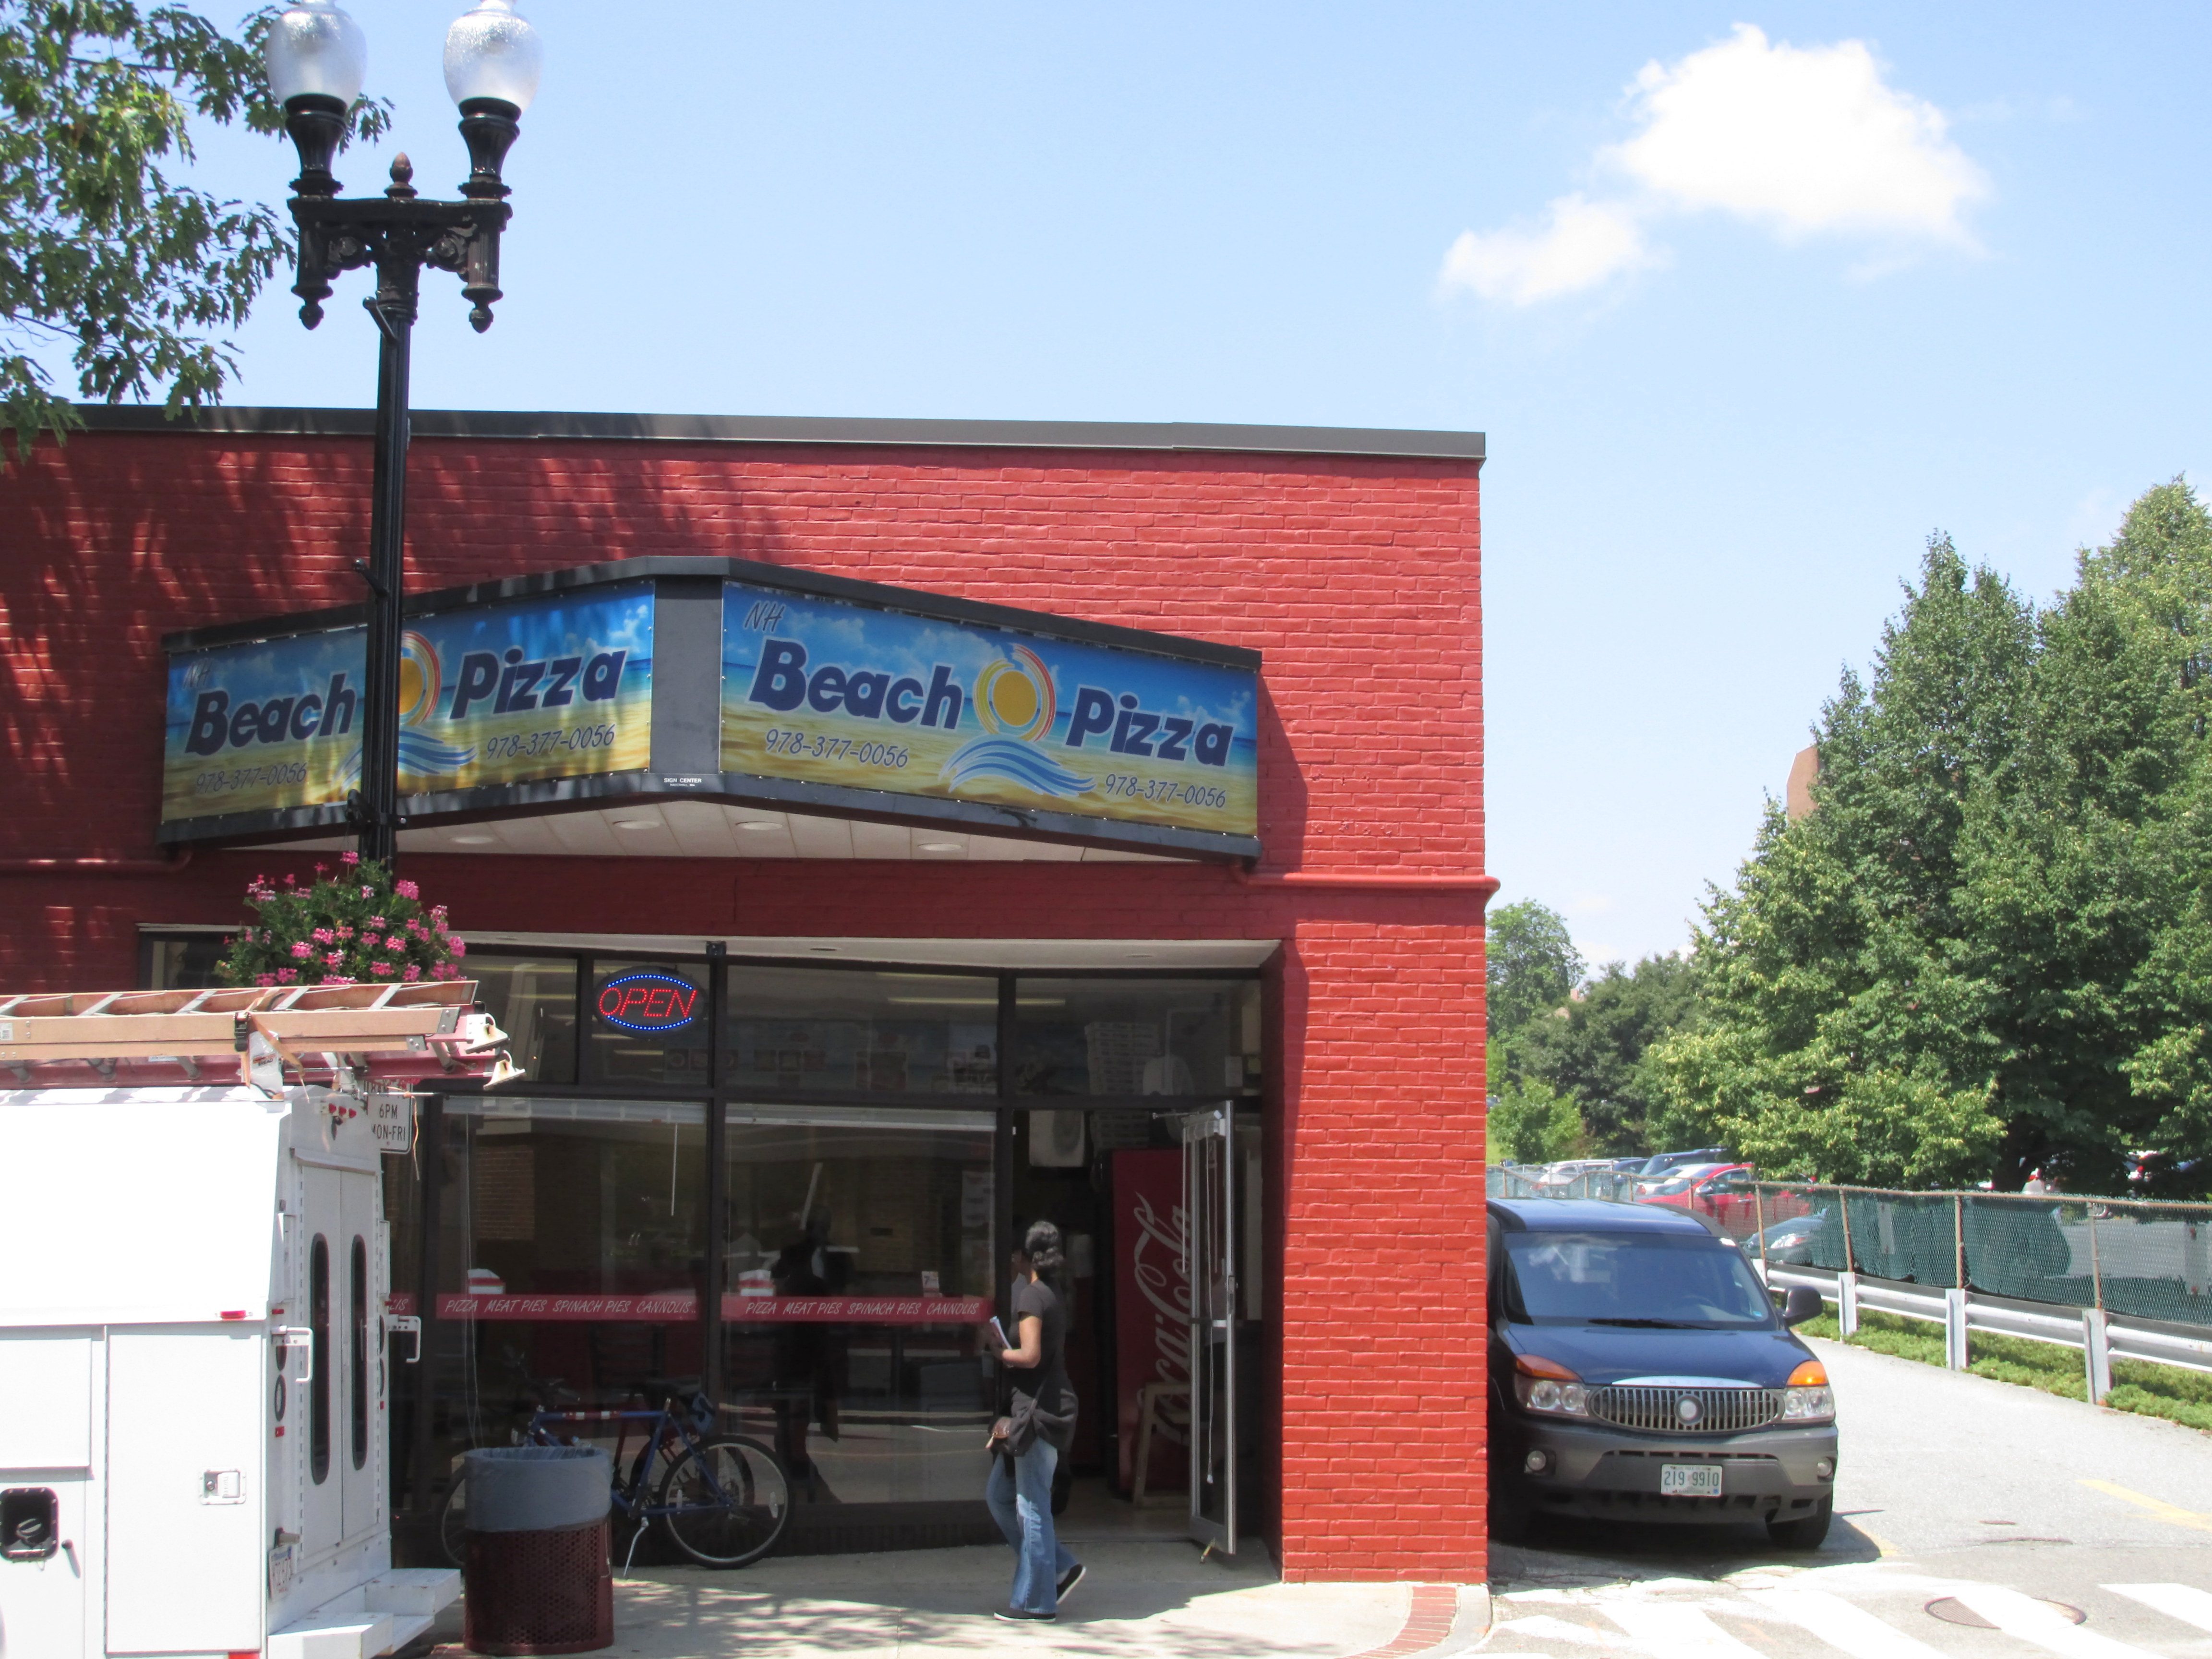 Beach Pizza Bbq New Eats In Haverhill The Heartbeat Of Haverhill